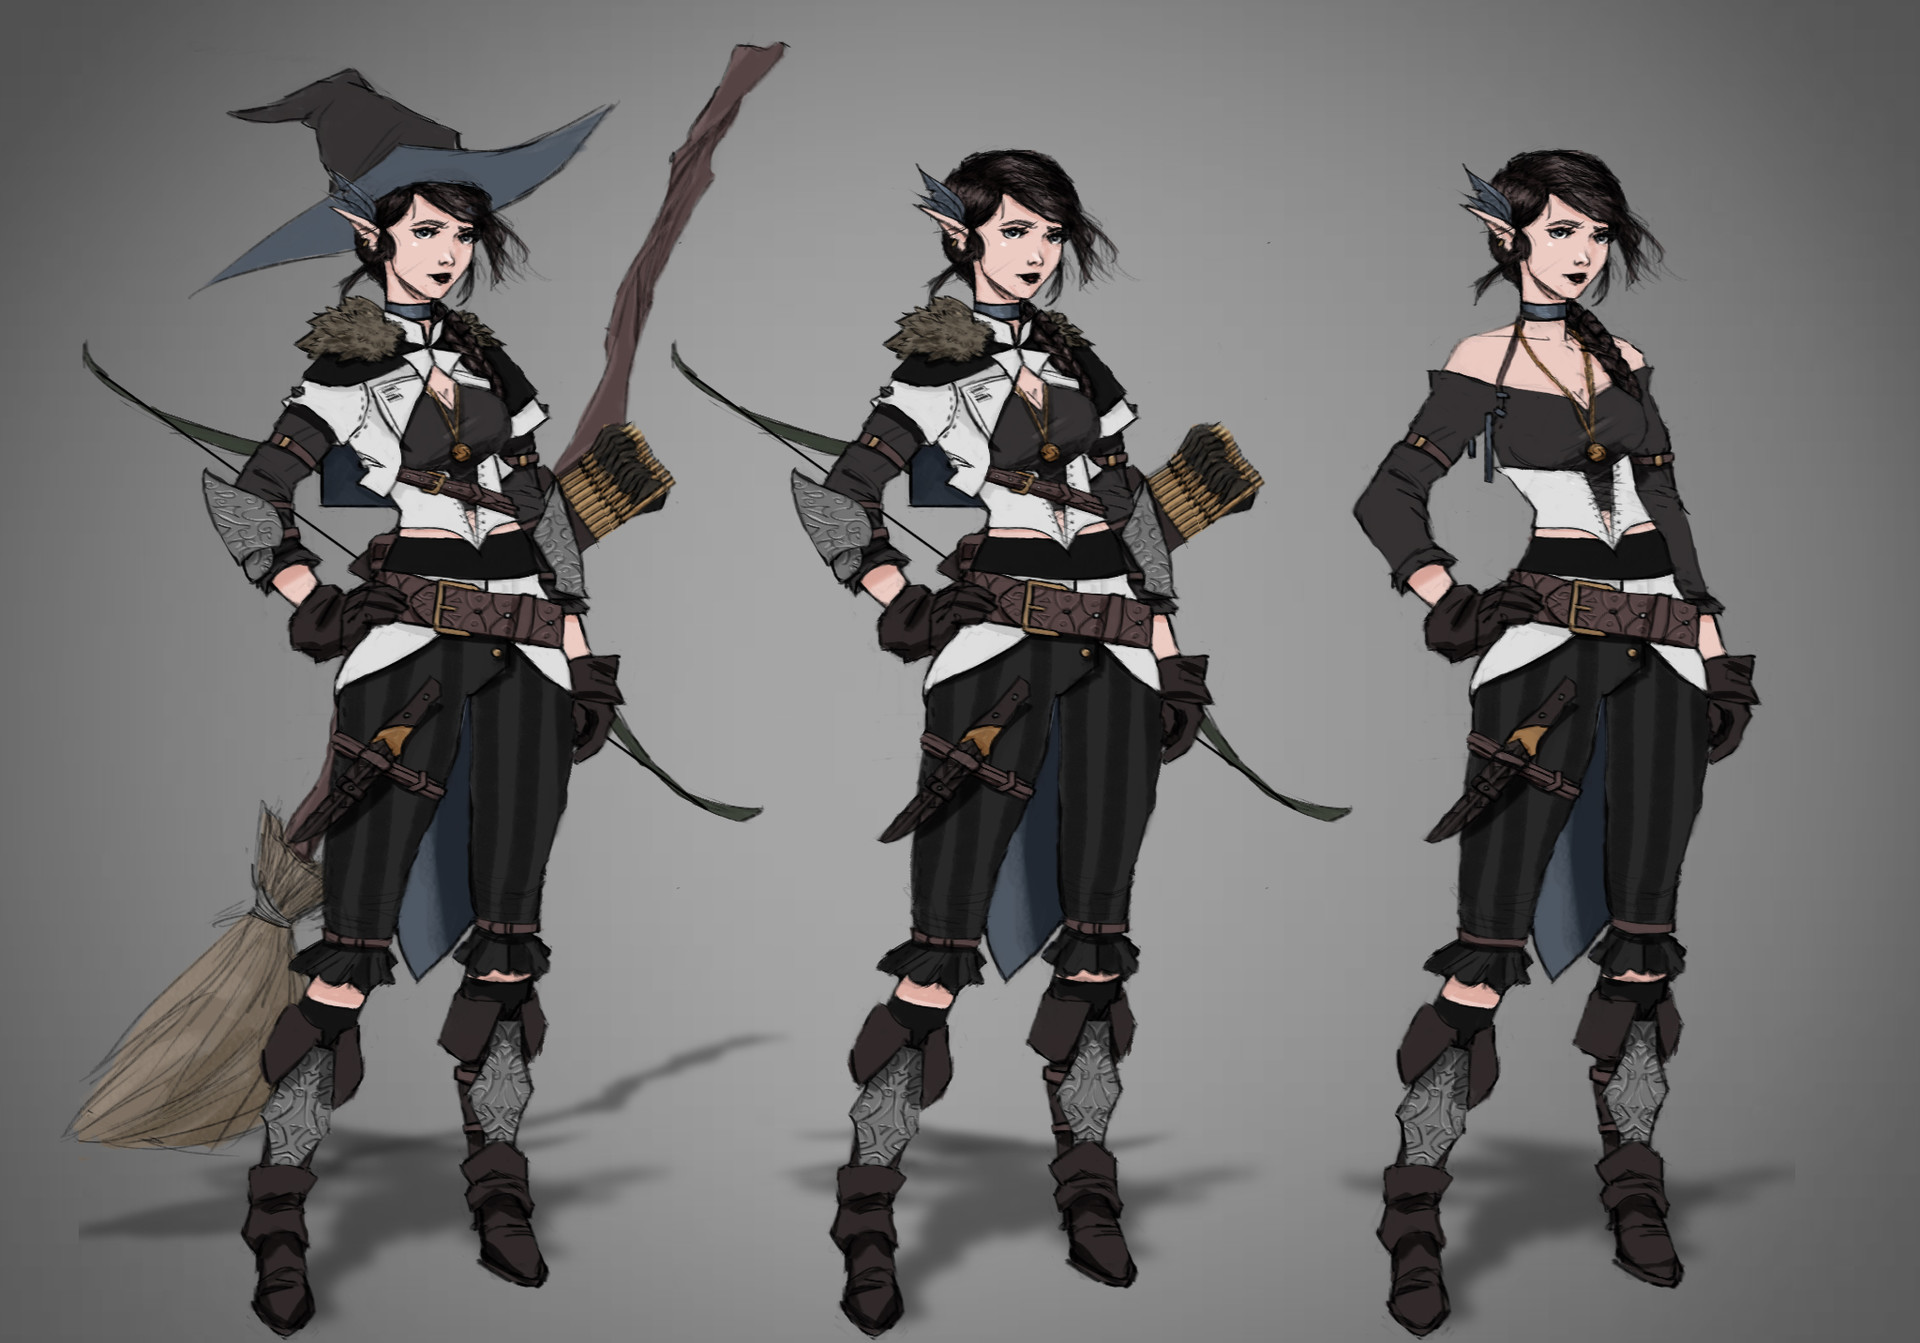 Artstation Lady Vex Ahlia Baroness Of The First House Of Whitestone Concept Art Critical role artist kit buss captures the evolution of vox machina with new character portraits | geek and sundry. artstation lady vex ahlia baroness